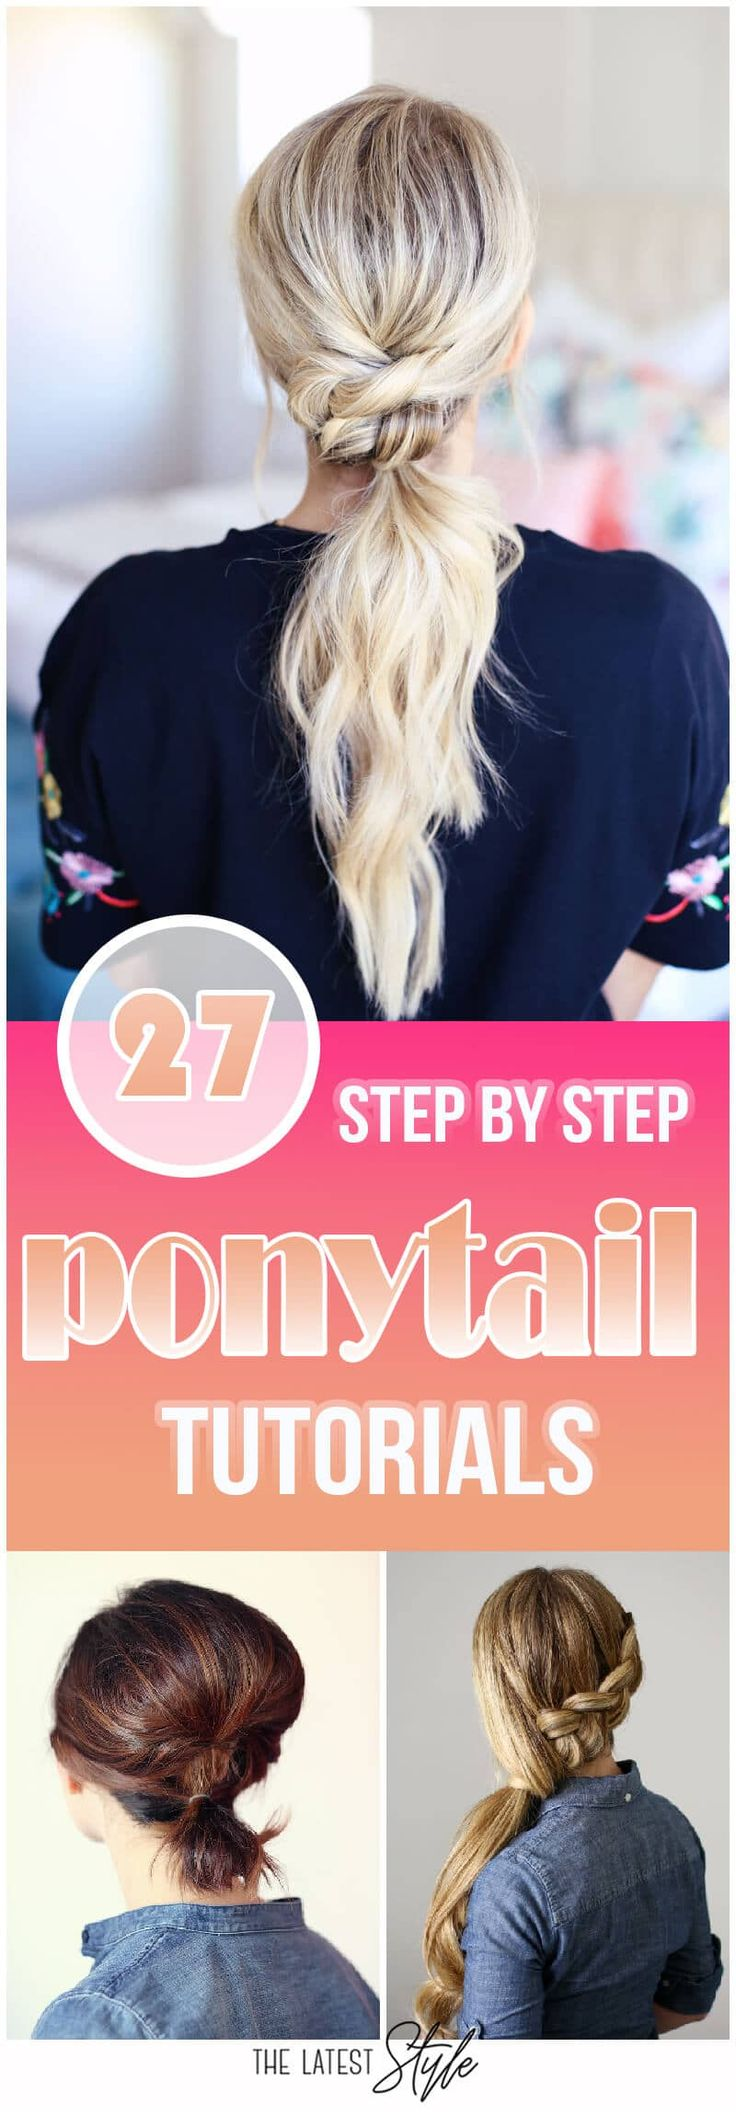 25 cute ponytail tutorials that anyone can do